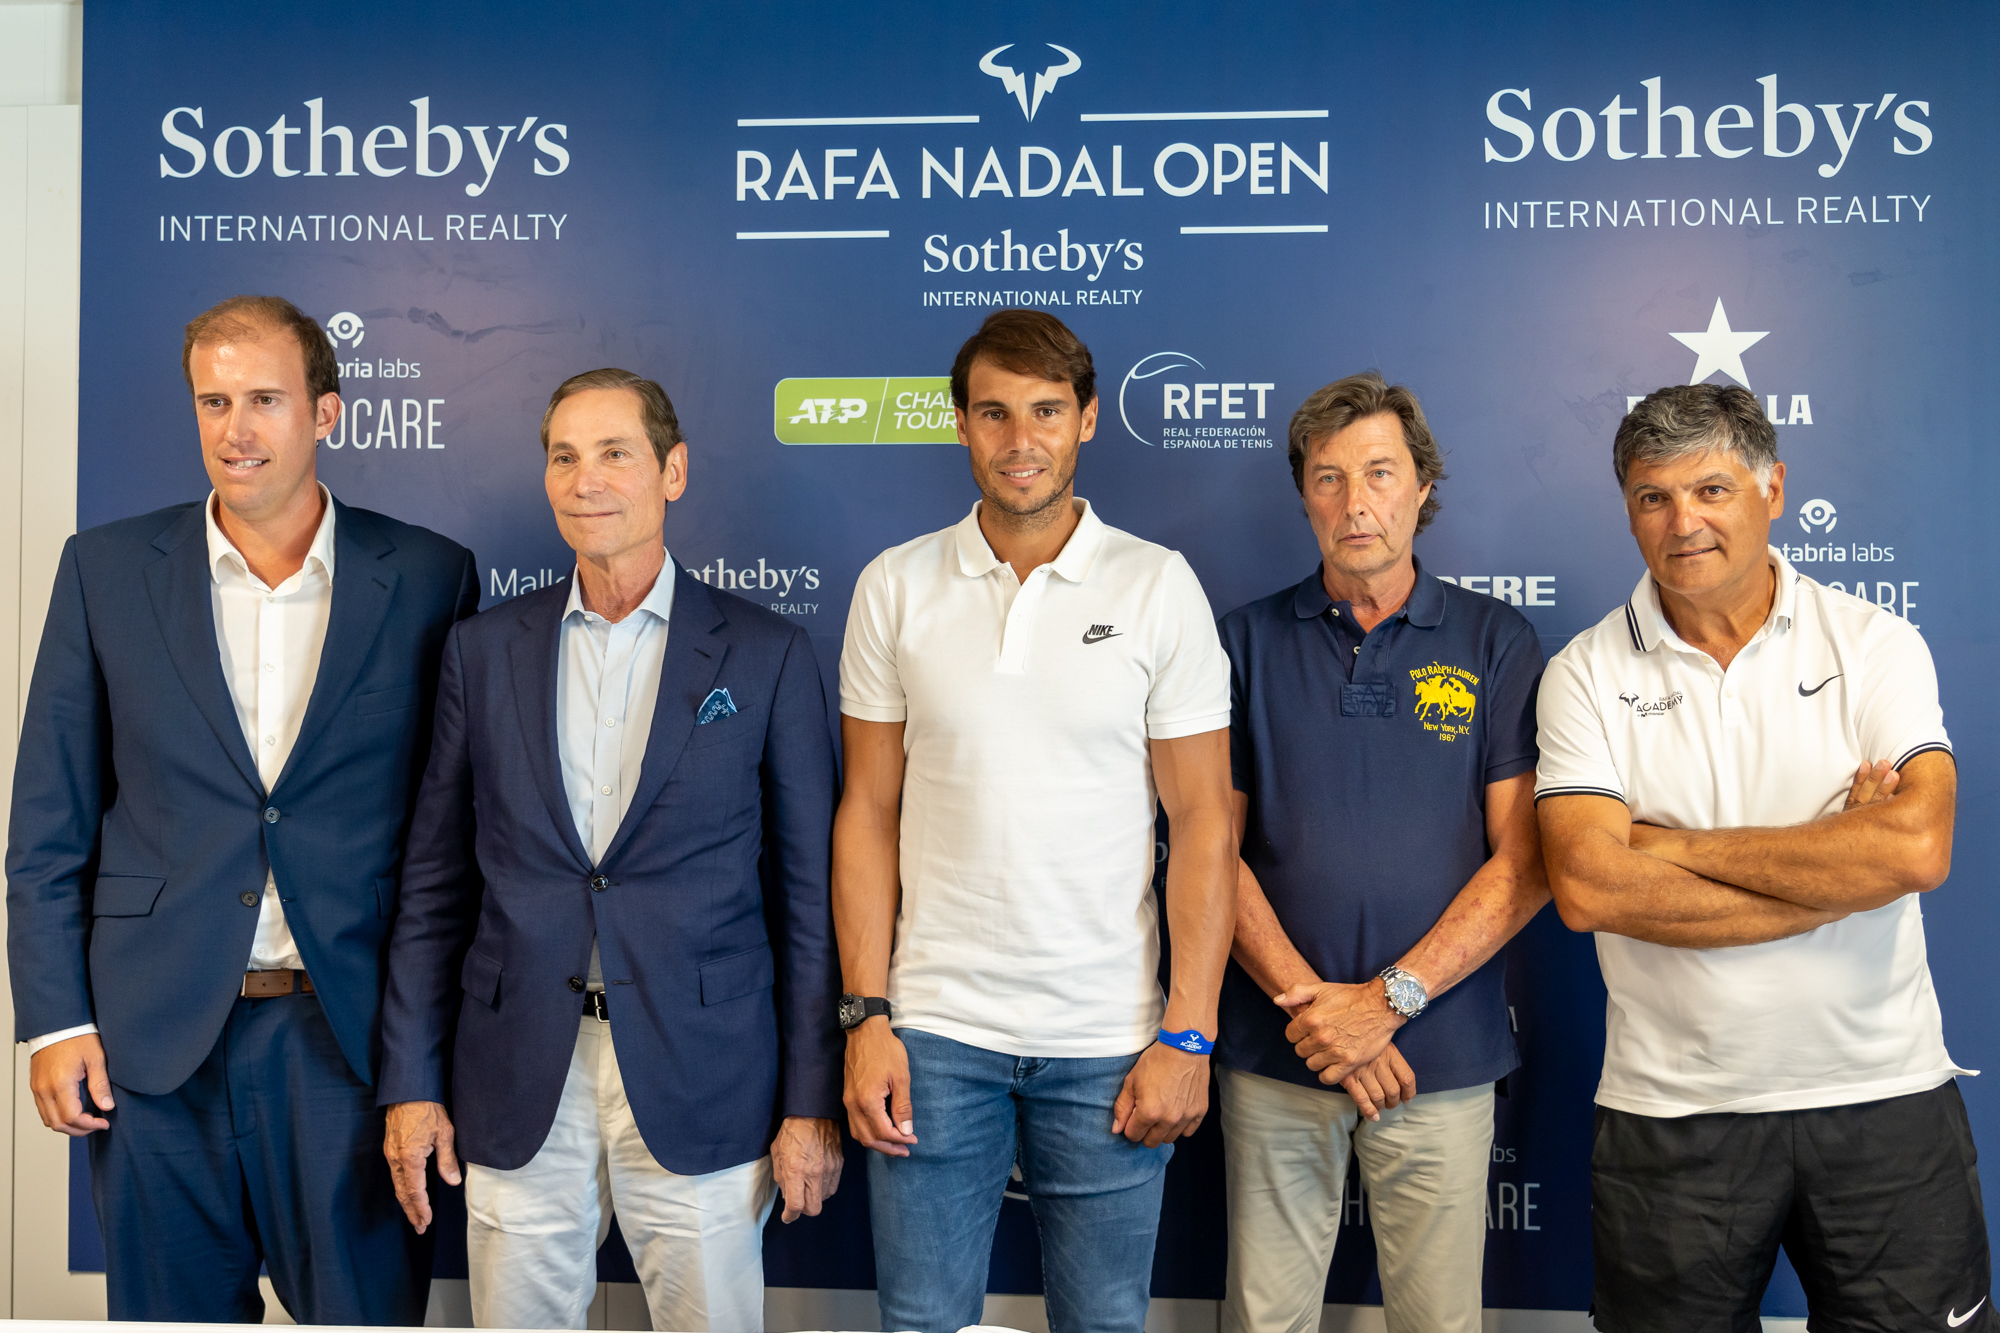 Vuelve el Rafa Nadal Open by Sotheby´s International Realty